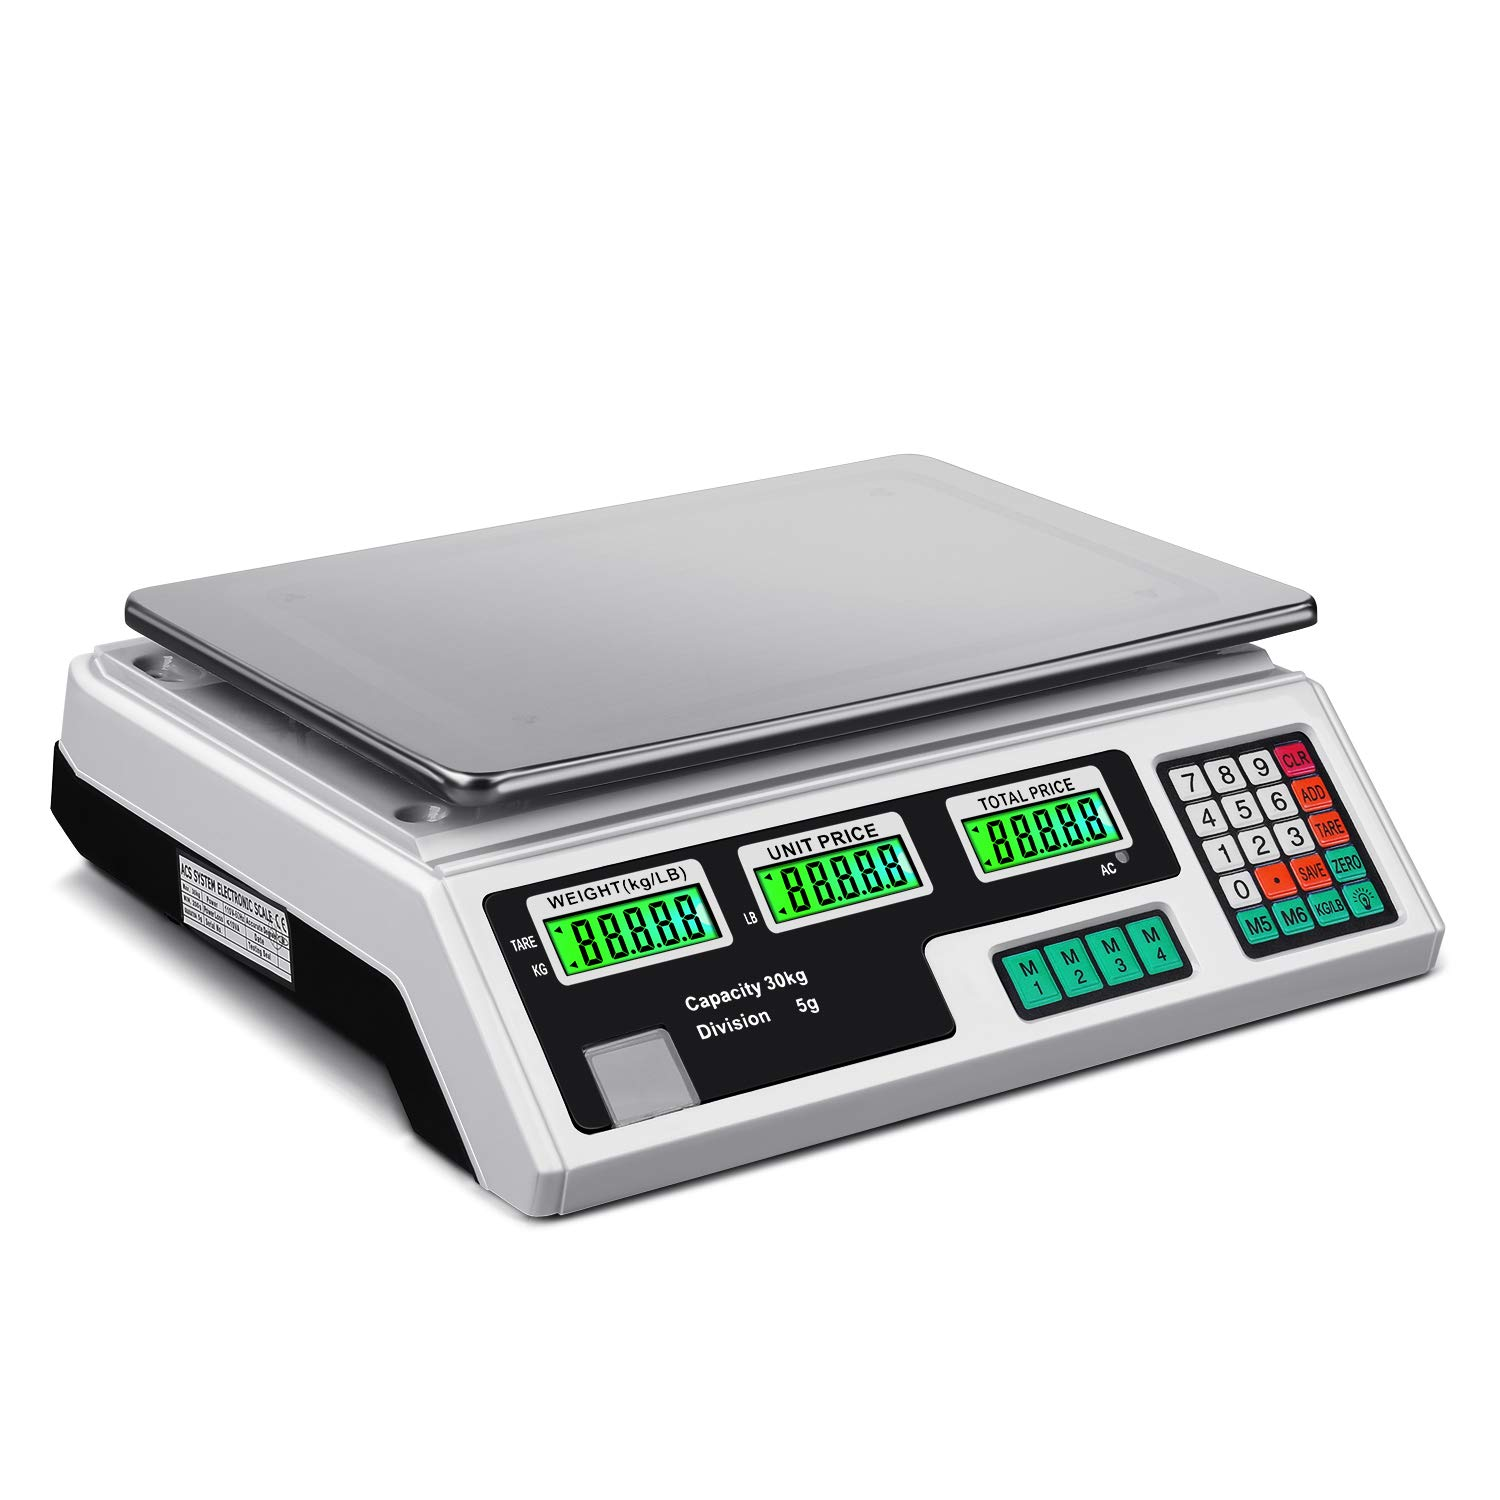 Flexzion Digital Scale Electronic Price Computing Rechargeable Battery Scale 66lb, Commercial Deli Food Produce Counting Fruit Meat Weighing, Farmers Markets, Post Office by Flexzion